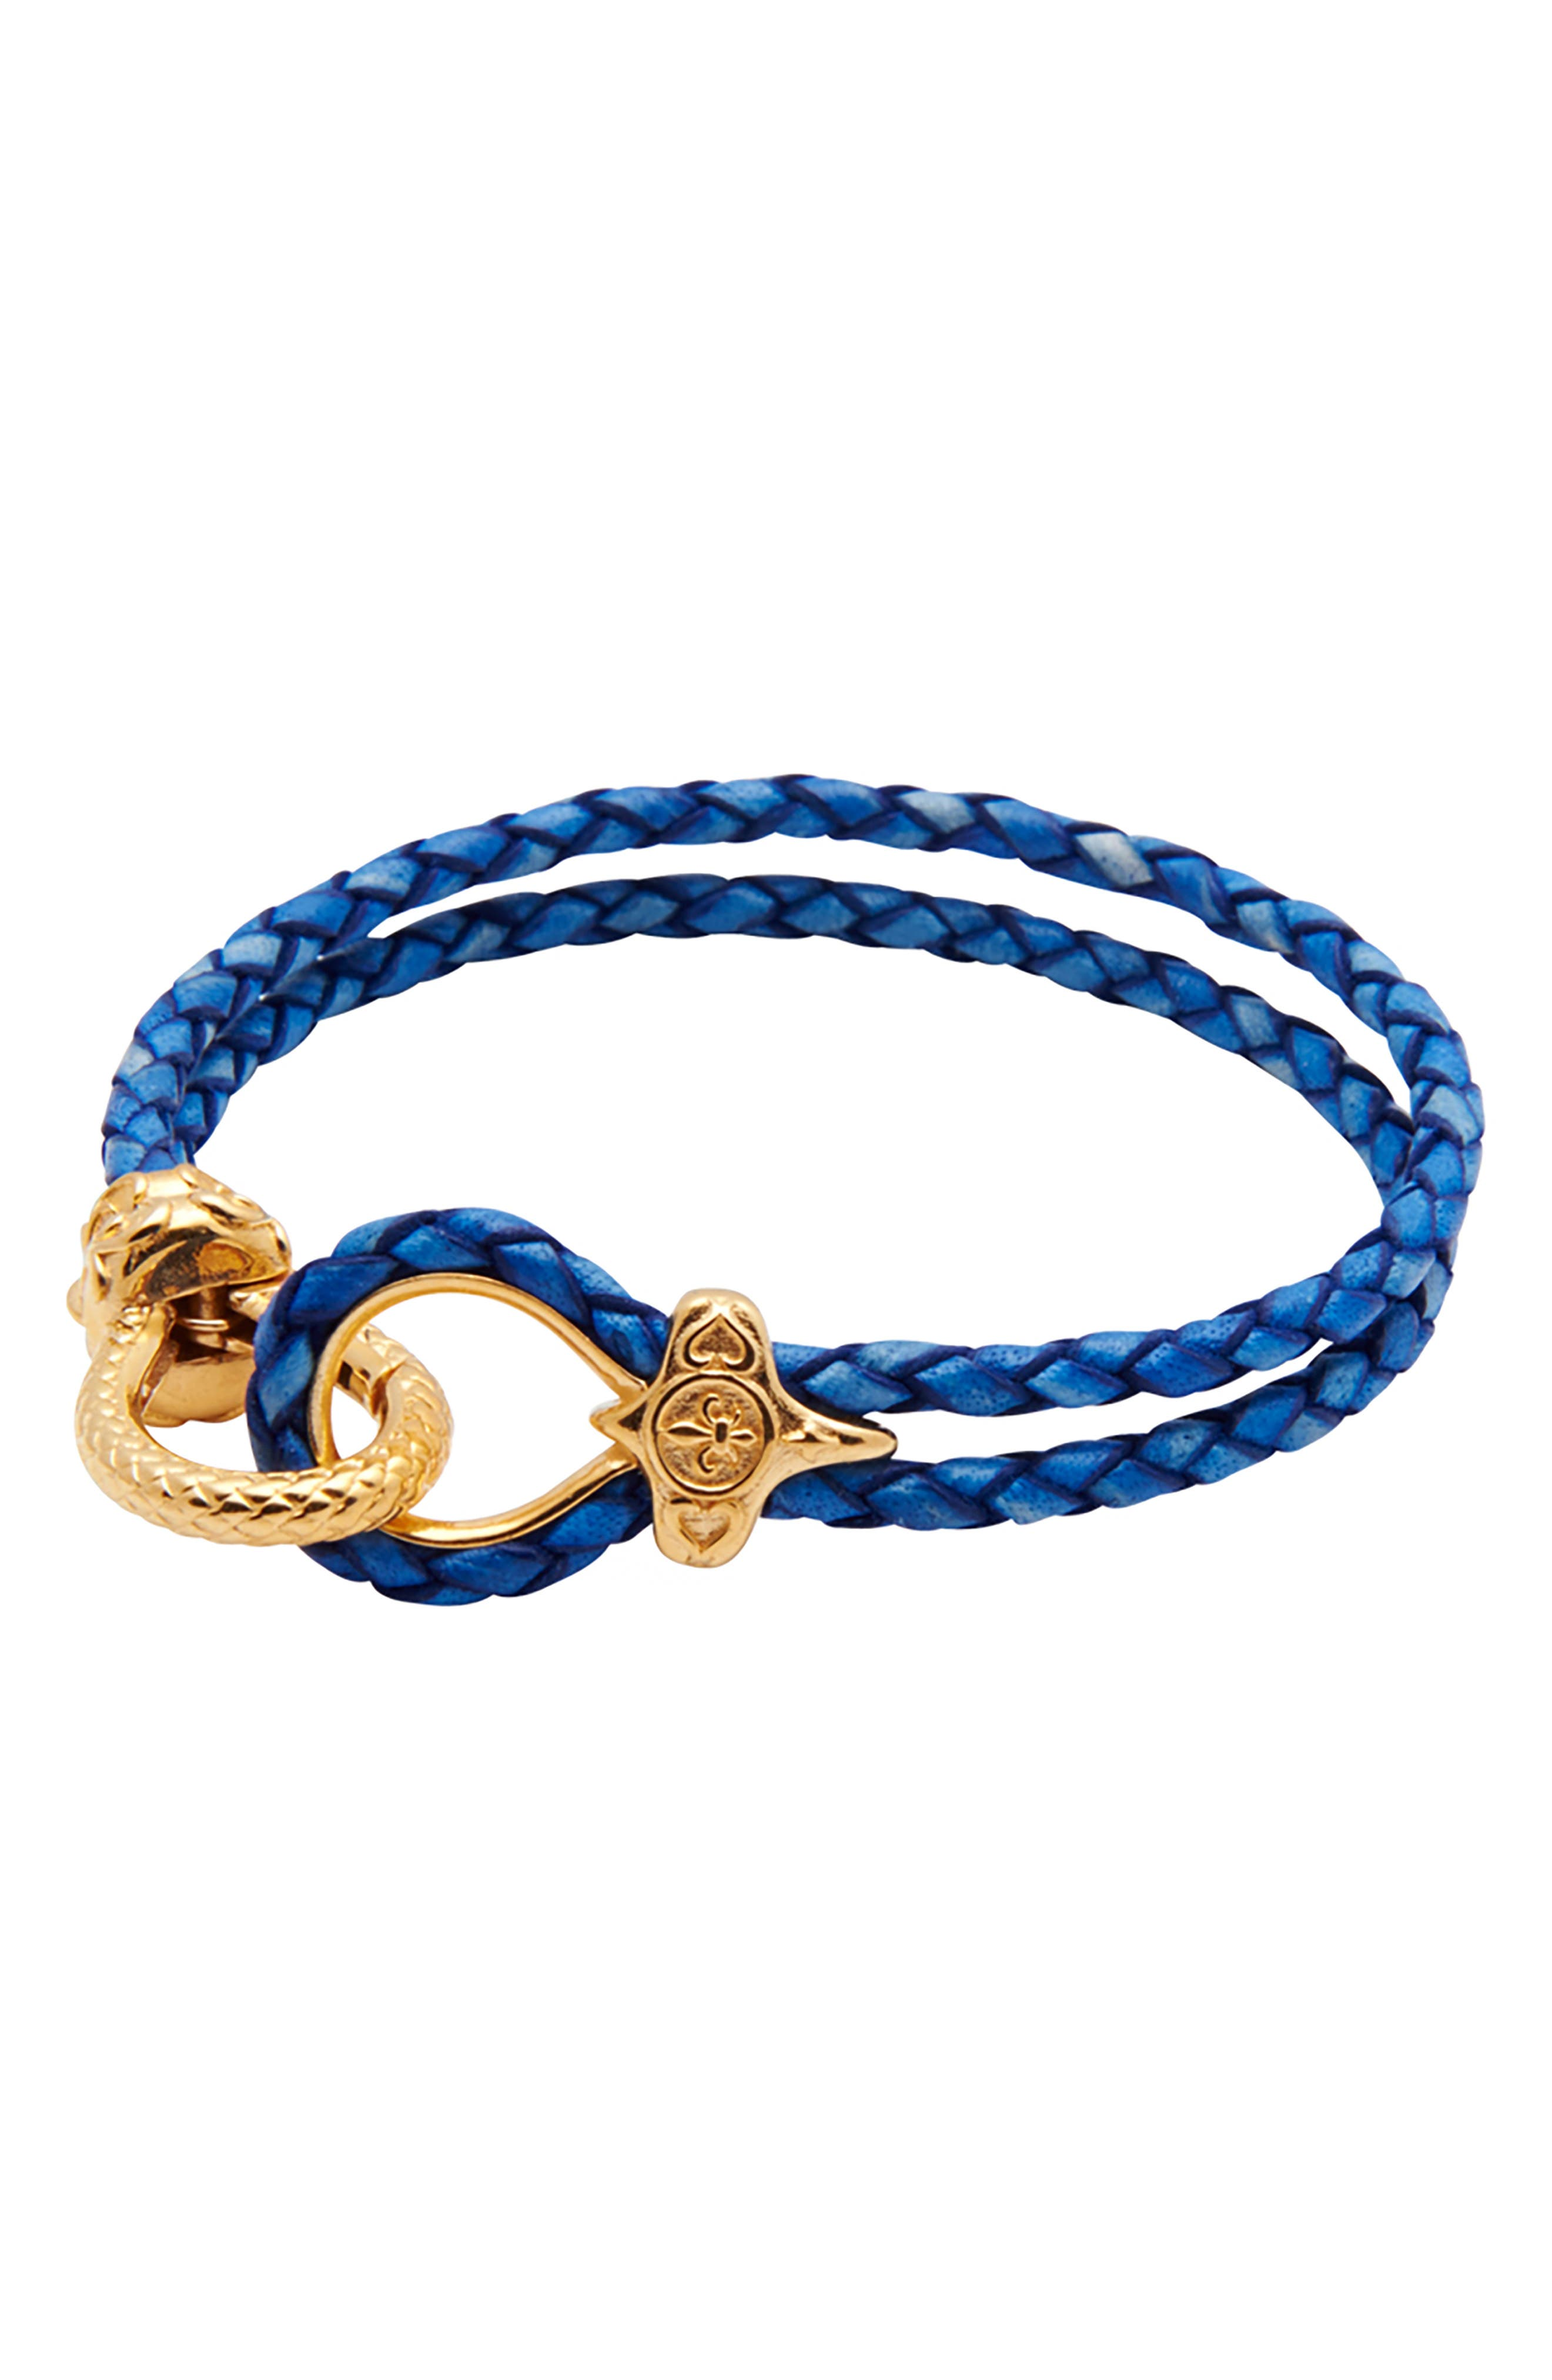 NIALAYA Braided Leather Bracelet in Gold/ Blue